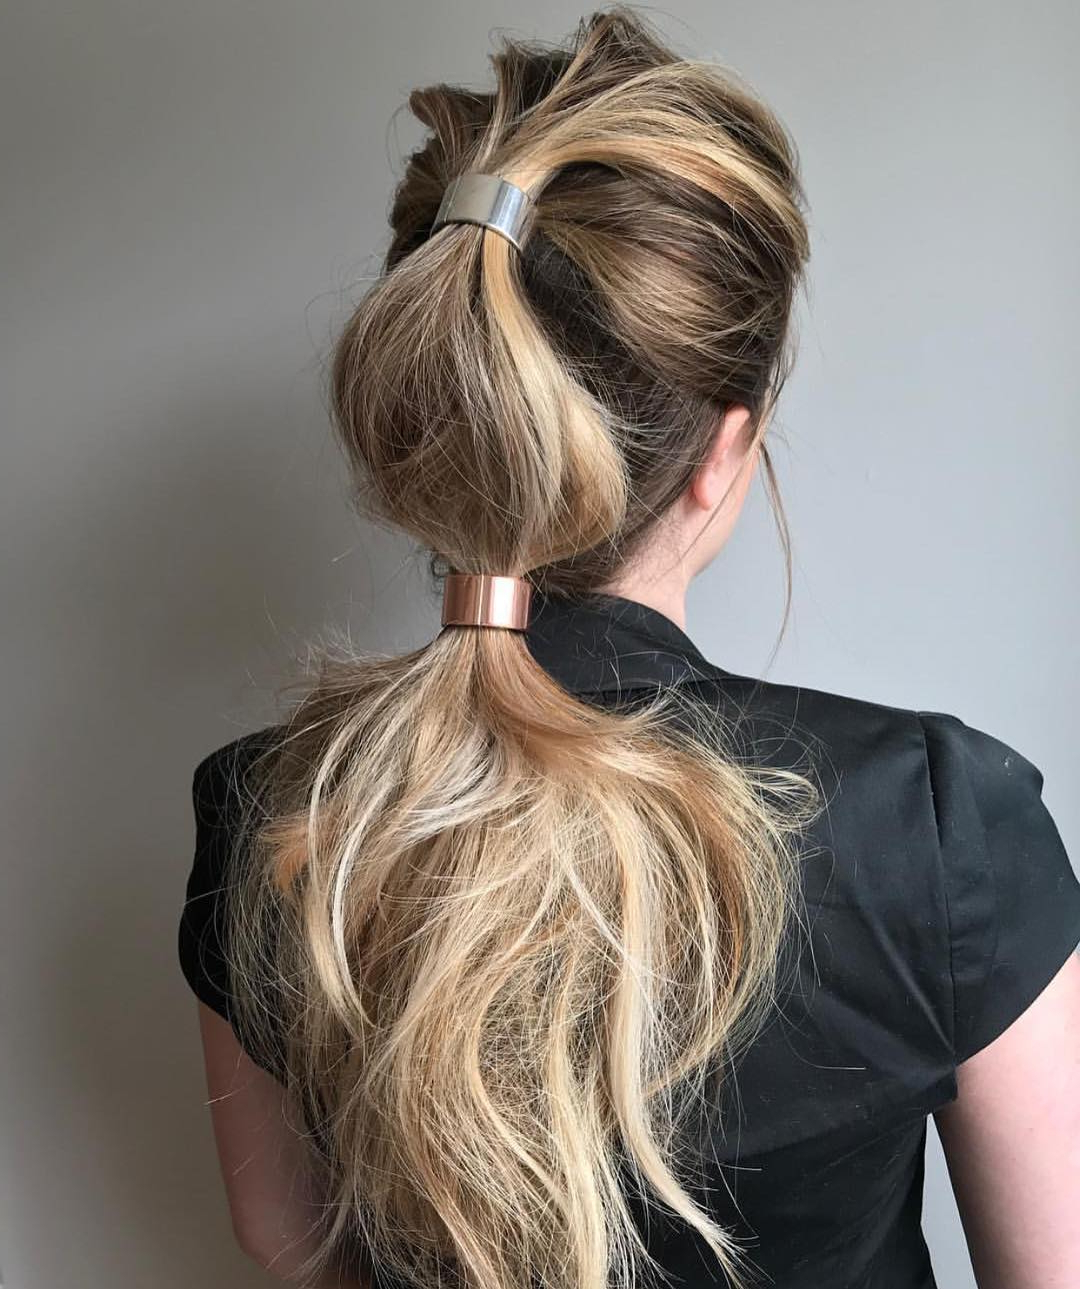 10 Trendiest Ponytail Hairstyles For Long Hair 2019 – Easy With Favorite Loosely Tied Braided Hairstyles With A Ribbon (Gallery 14 of 20)